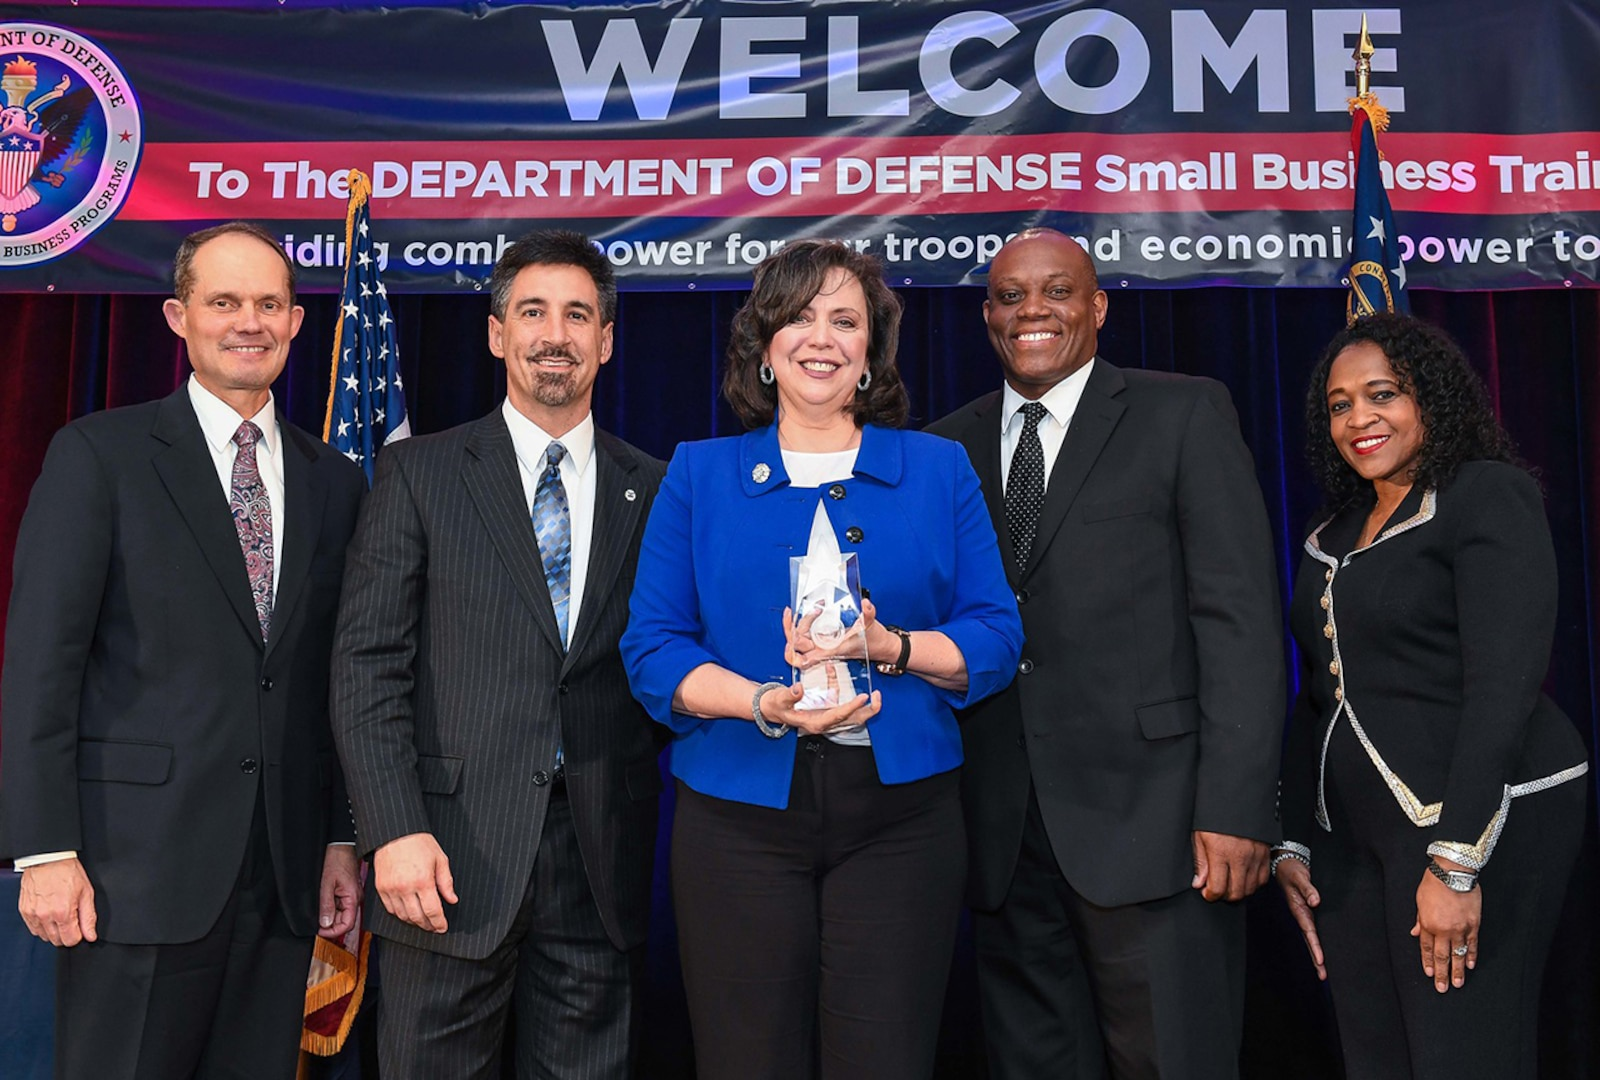 DLA Land and Maritime's Small Business Office received the Verdure Award during the DoD's annual Vanguard Awards ceremony April 6 in Atlanta, GA for significant contributions to buying method efficiency and innovation. From left: Dr. James Galvin, acting director of DoD Office of Small Business Programs; Carlo Daleo, Land and Maritime procurement analyst; Coleen McCormick, Land and Maritime Office of Small Business Programs associate director; Earl Madison, Land and Maritime small business specialist; Alice Williams, DoD Office of Small Business Programs acting deputy director.